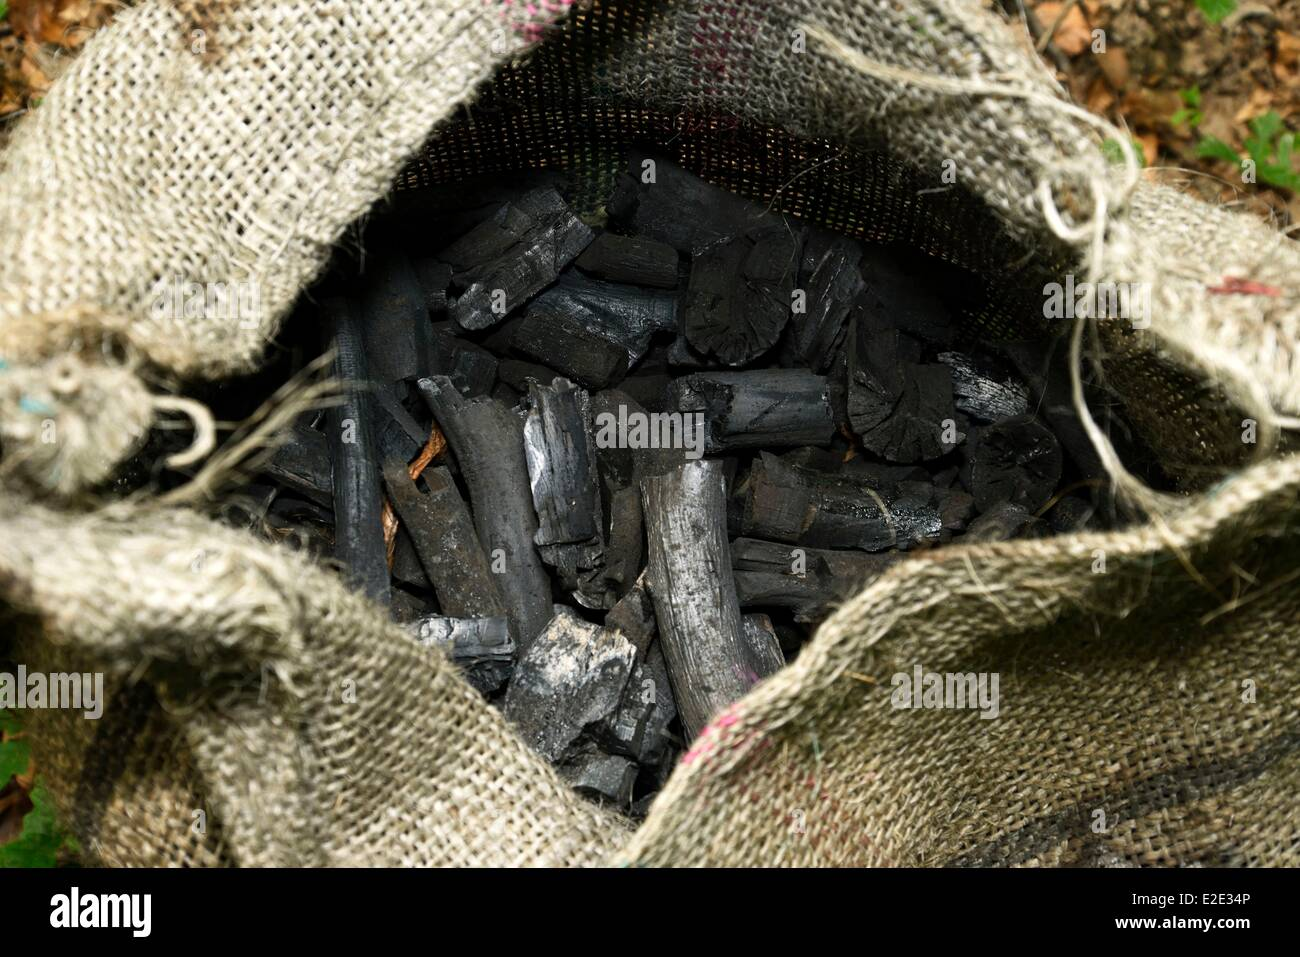 France Jura Chaux forest towards Dole La Vieille Loye Baraques du 14 wood charcoal - Stock Image